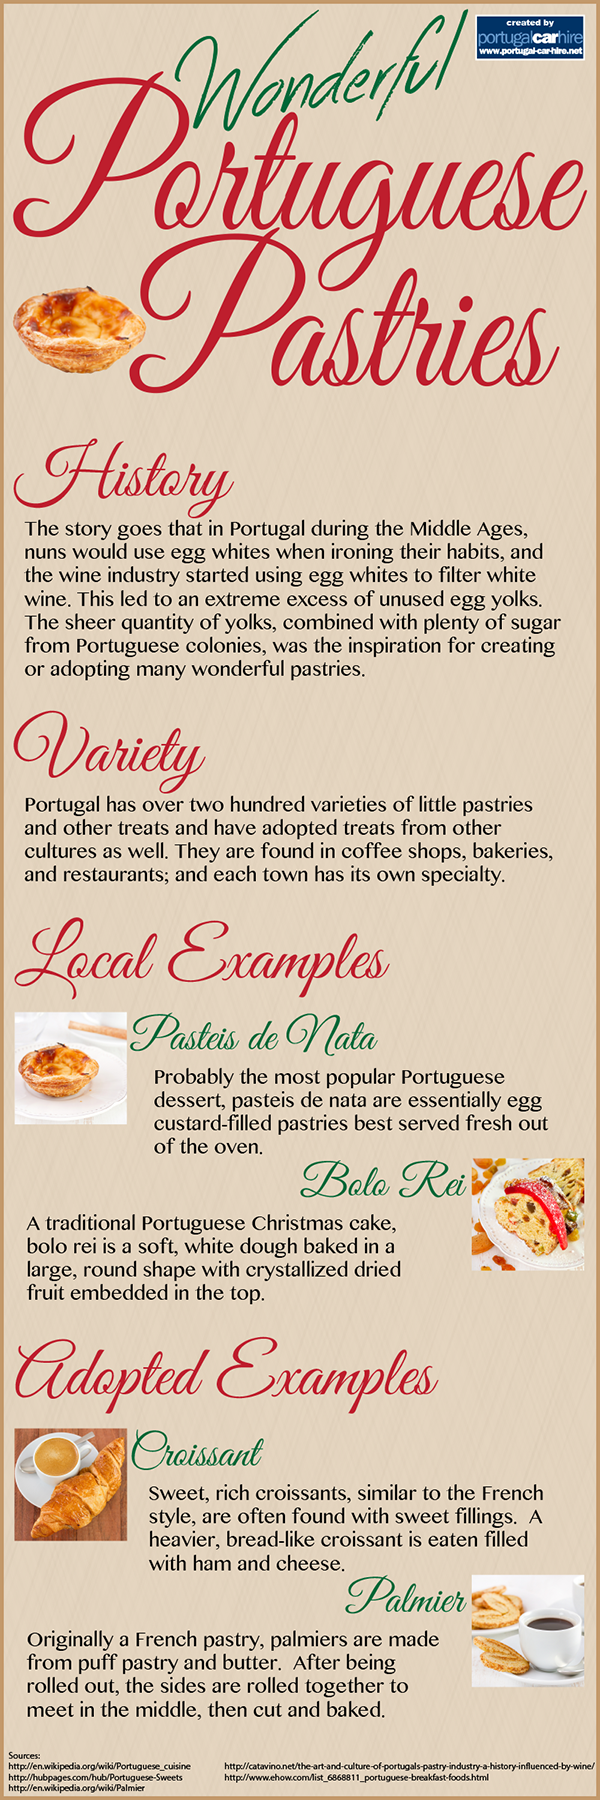 Wonderful-Portuguese-Pastries (1)